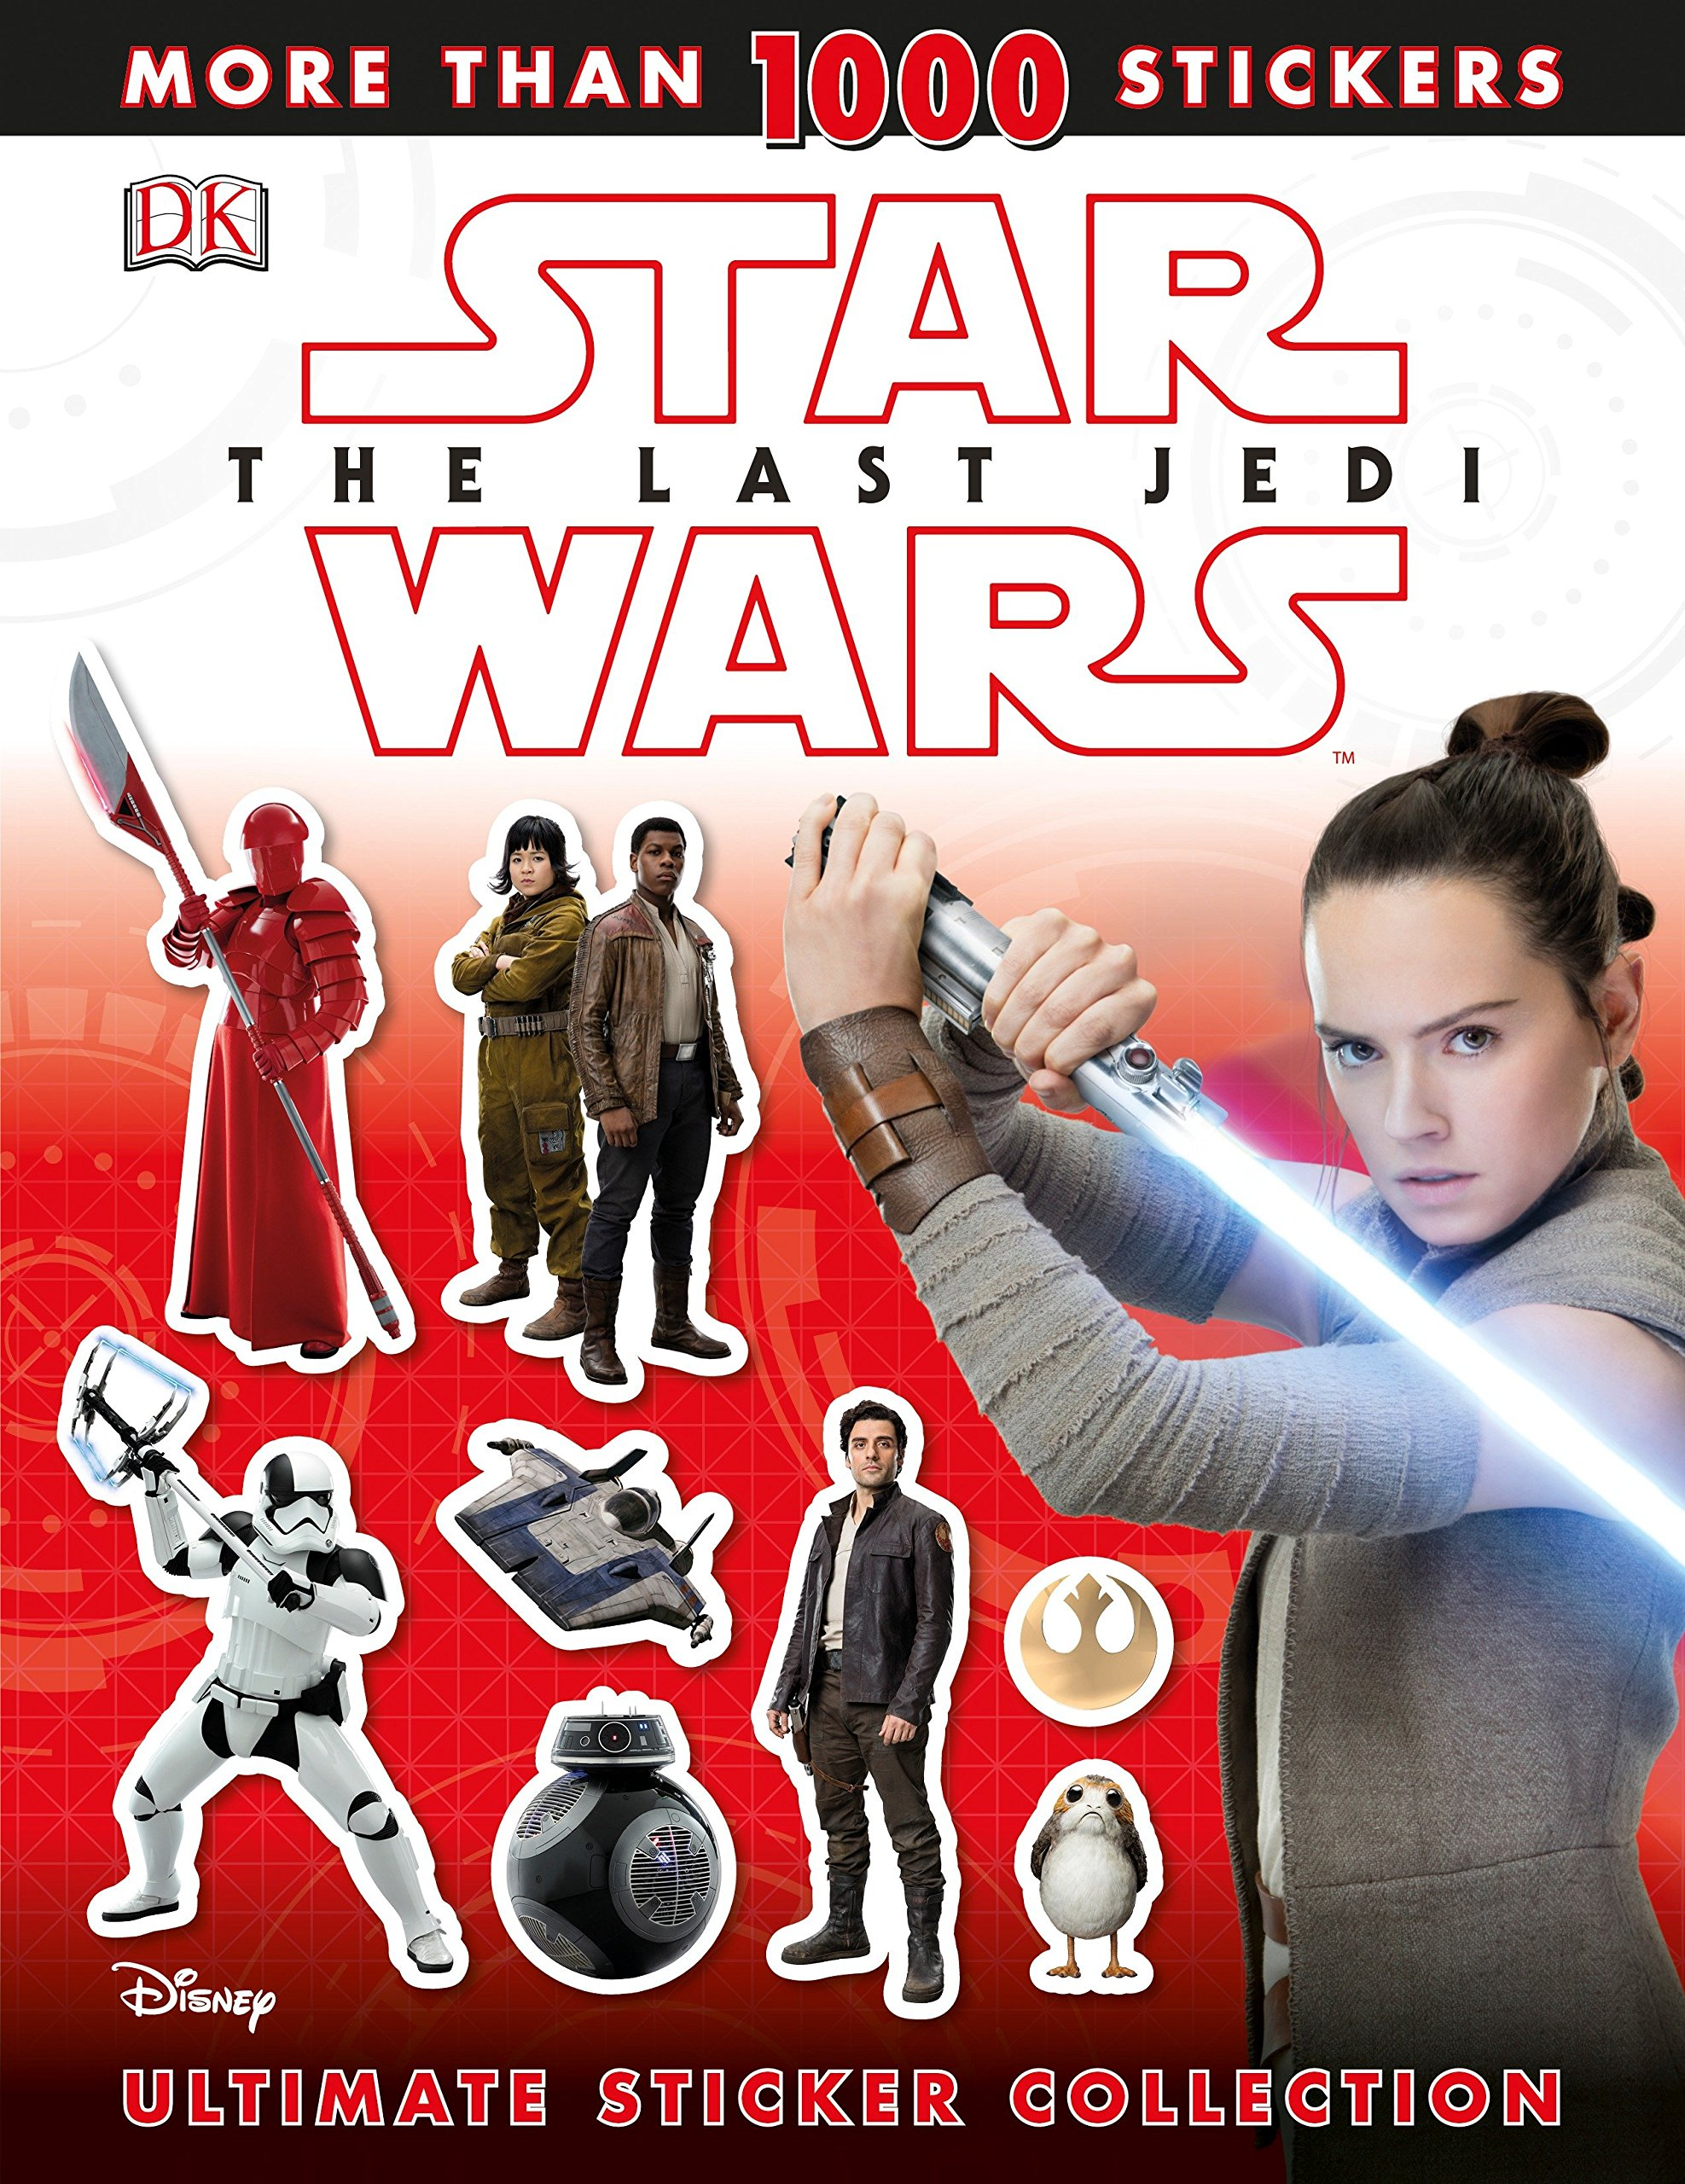 Star Wars The Last Jedi: Ultimate Sticker Collection